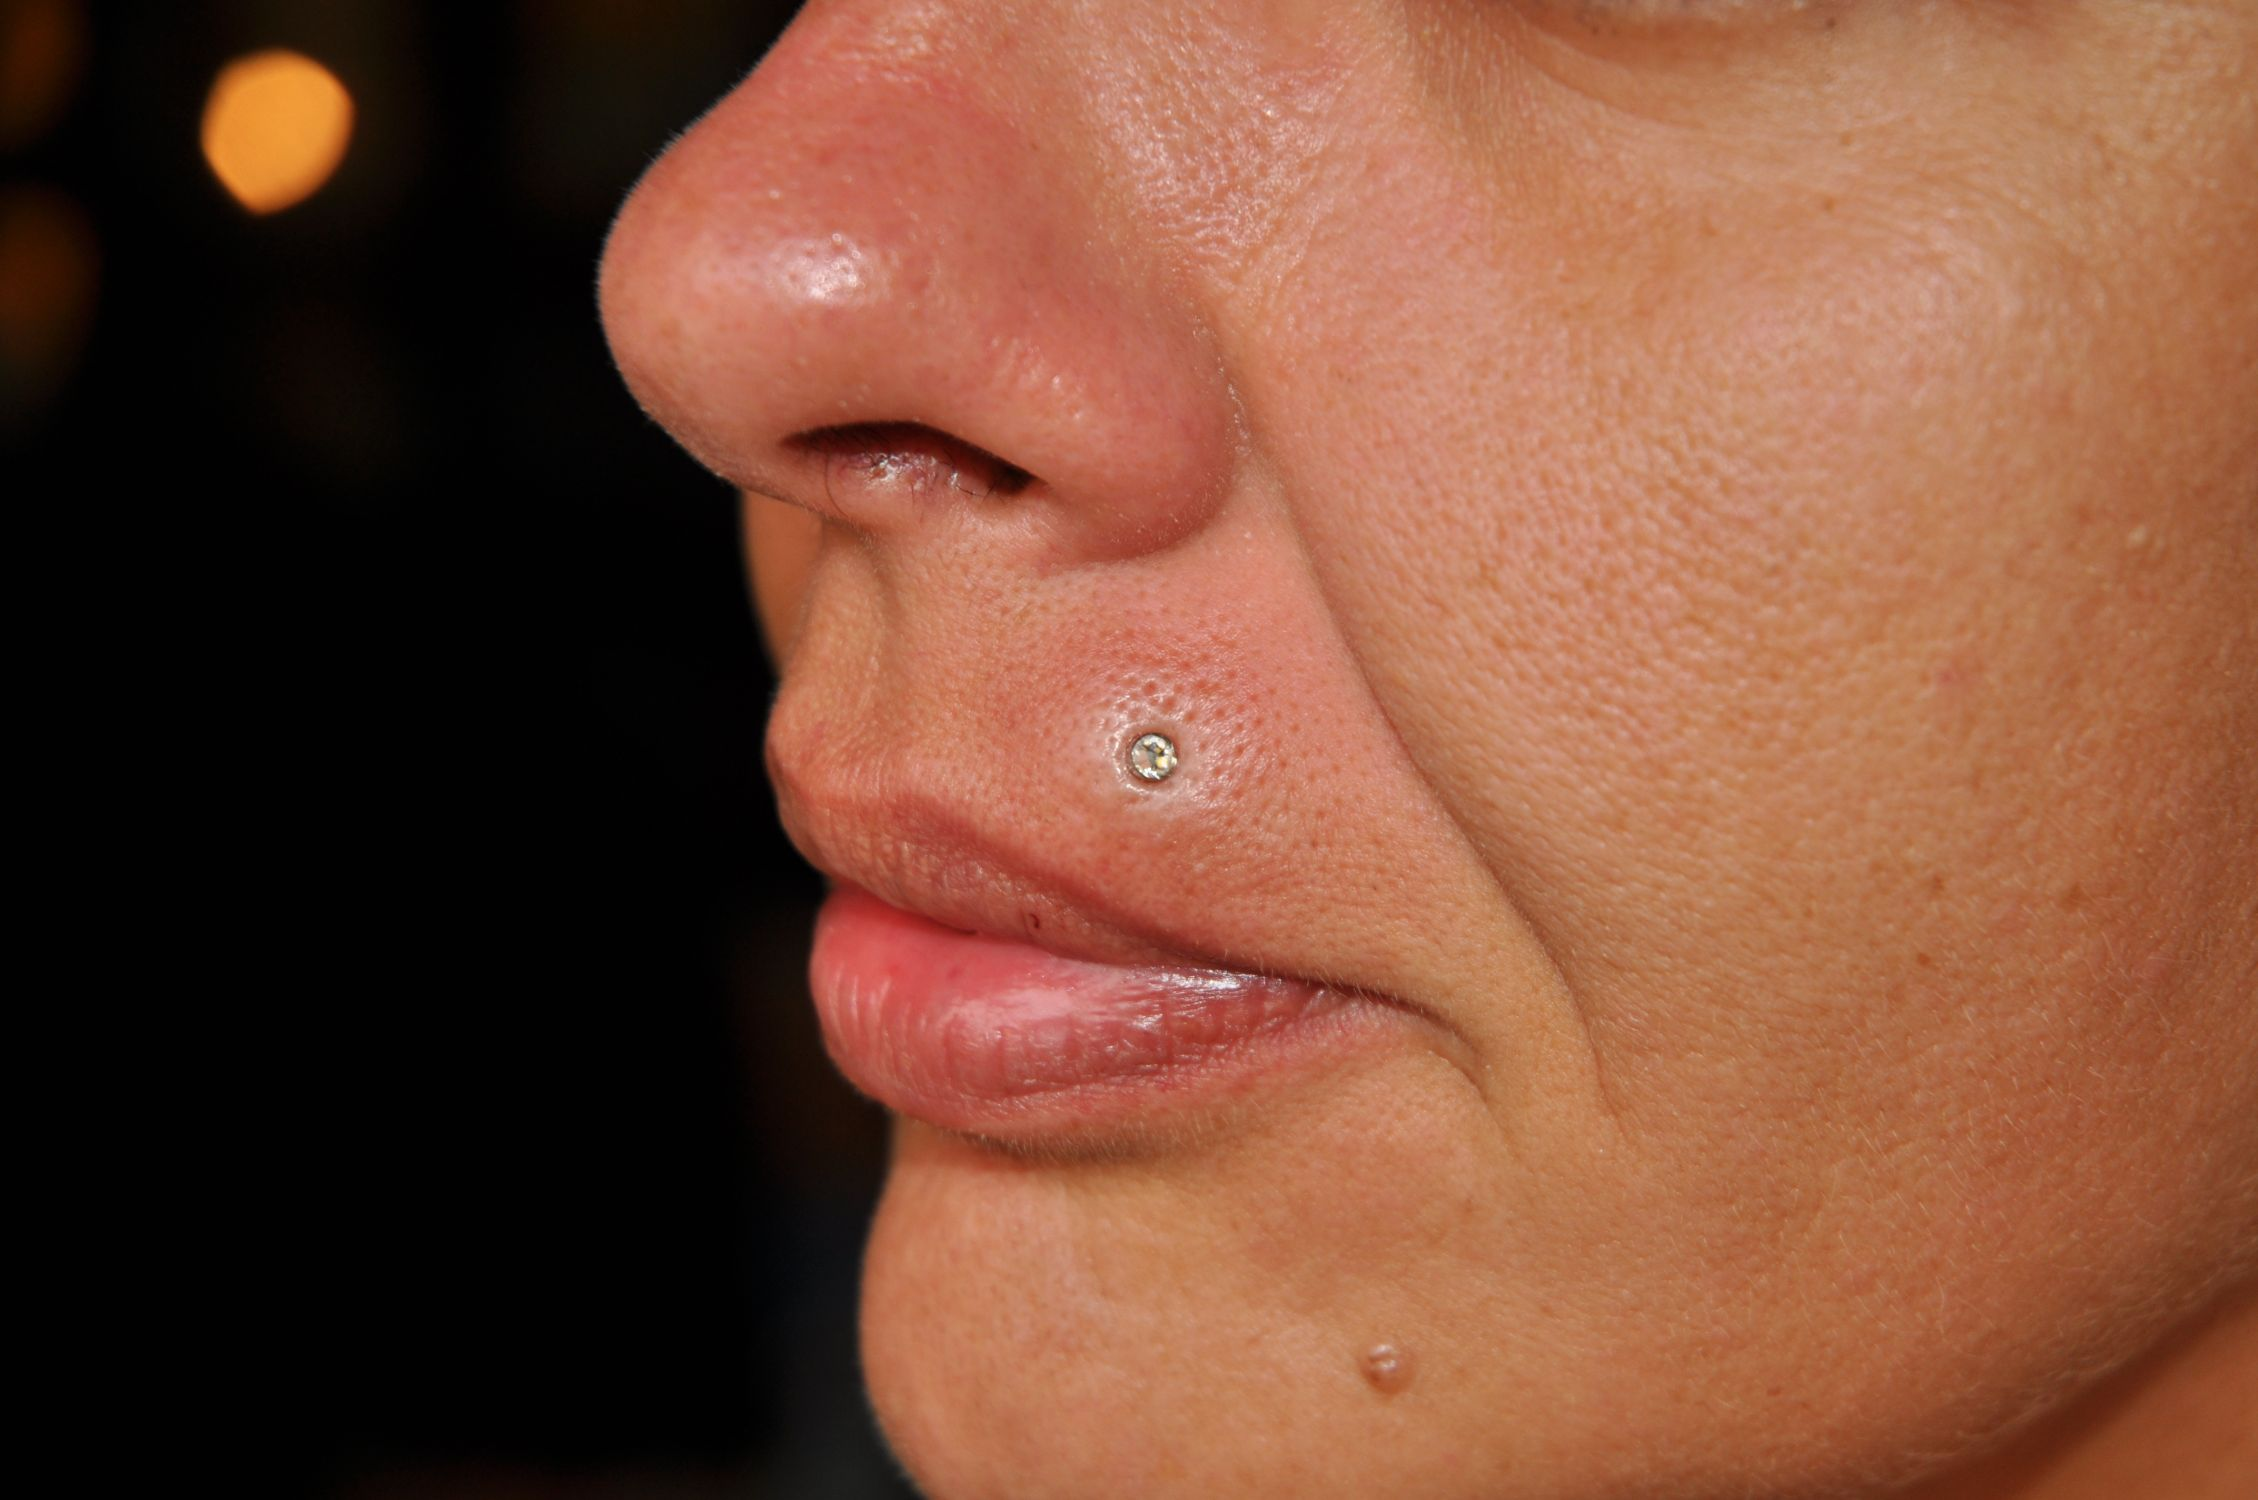 Microdermal piercing